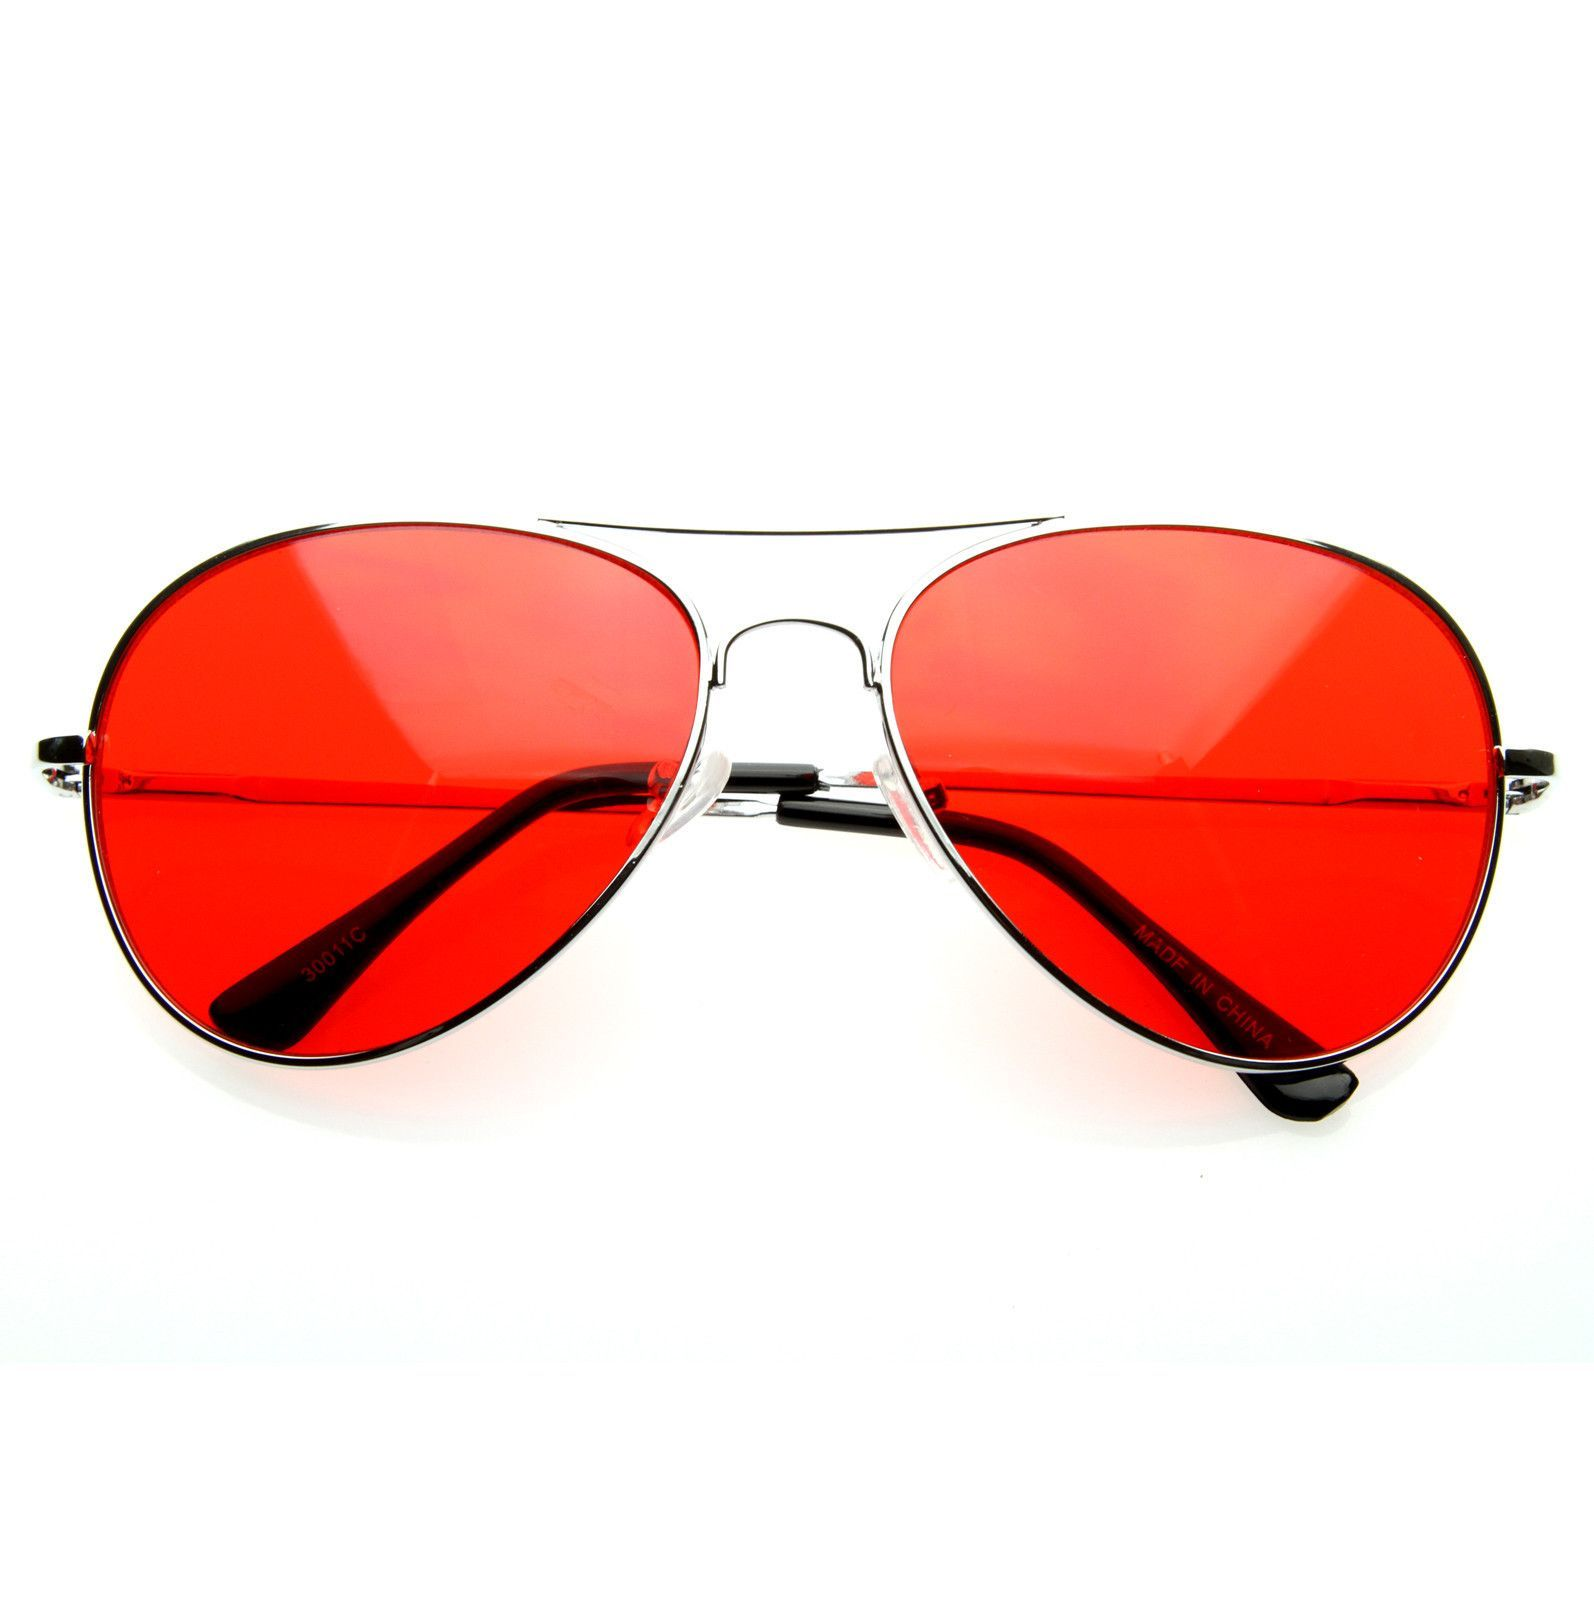 ff6471fc37 Retro Classic Metal Aviator Multi Color Tinted Lens Aviator Sunglasses 8405  59mm from zeroUV